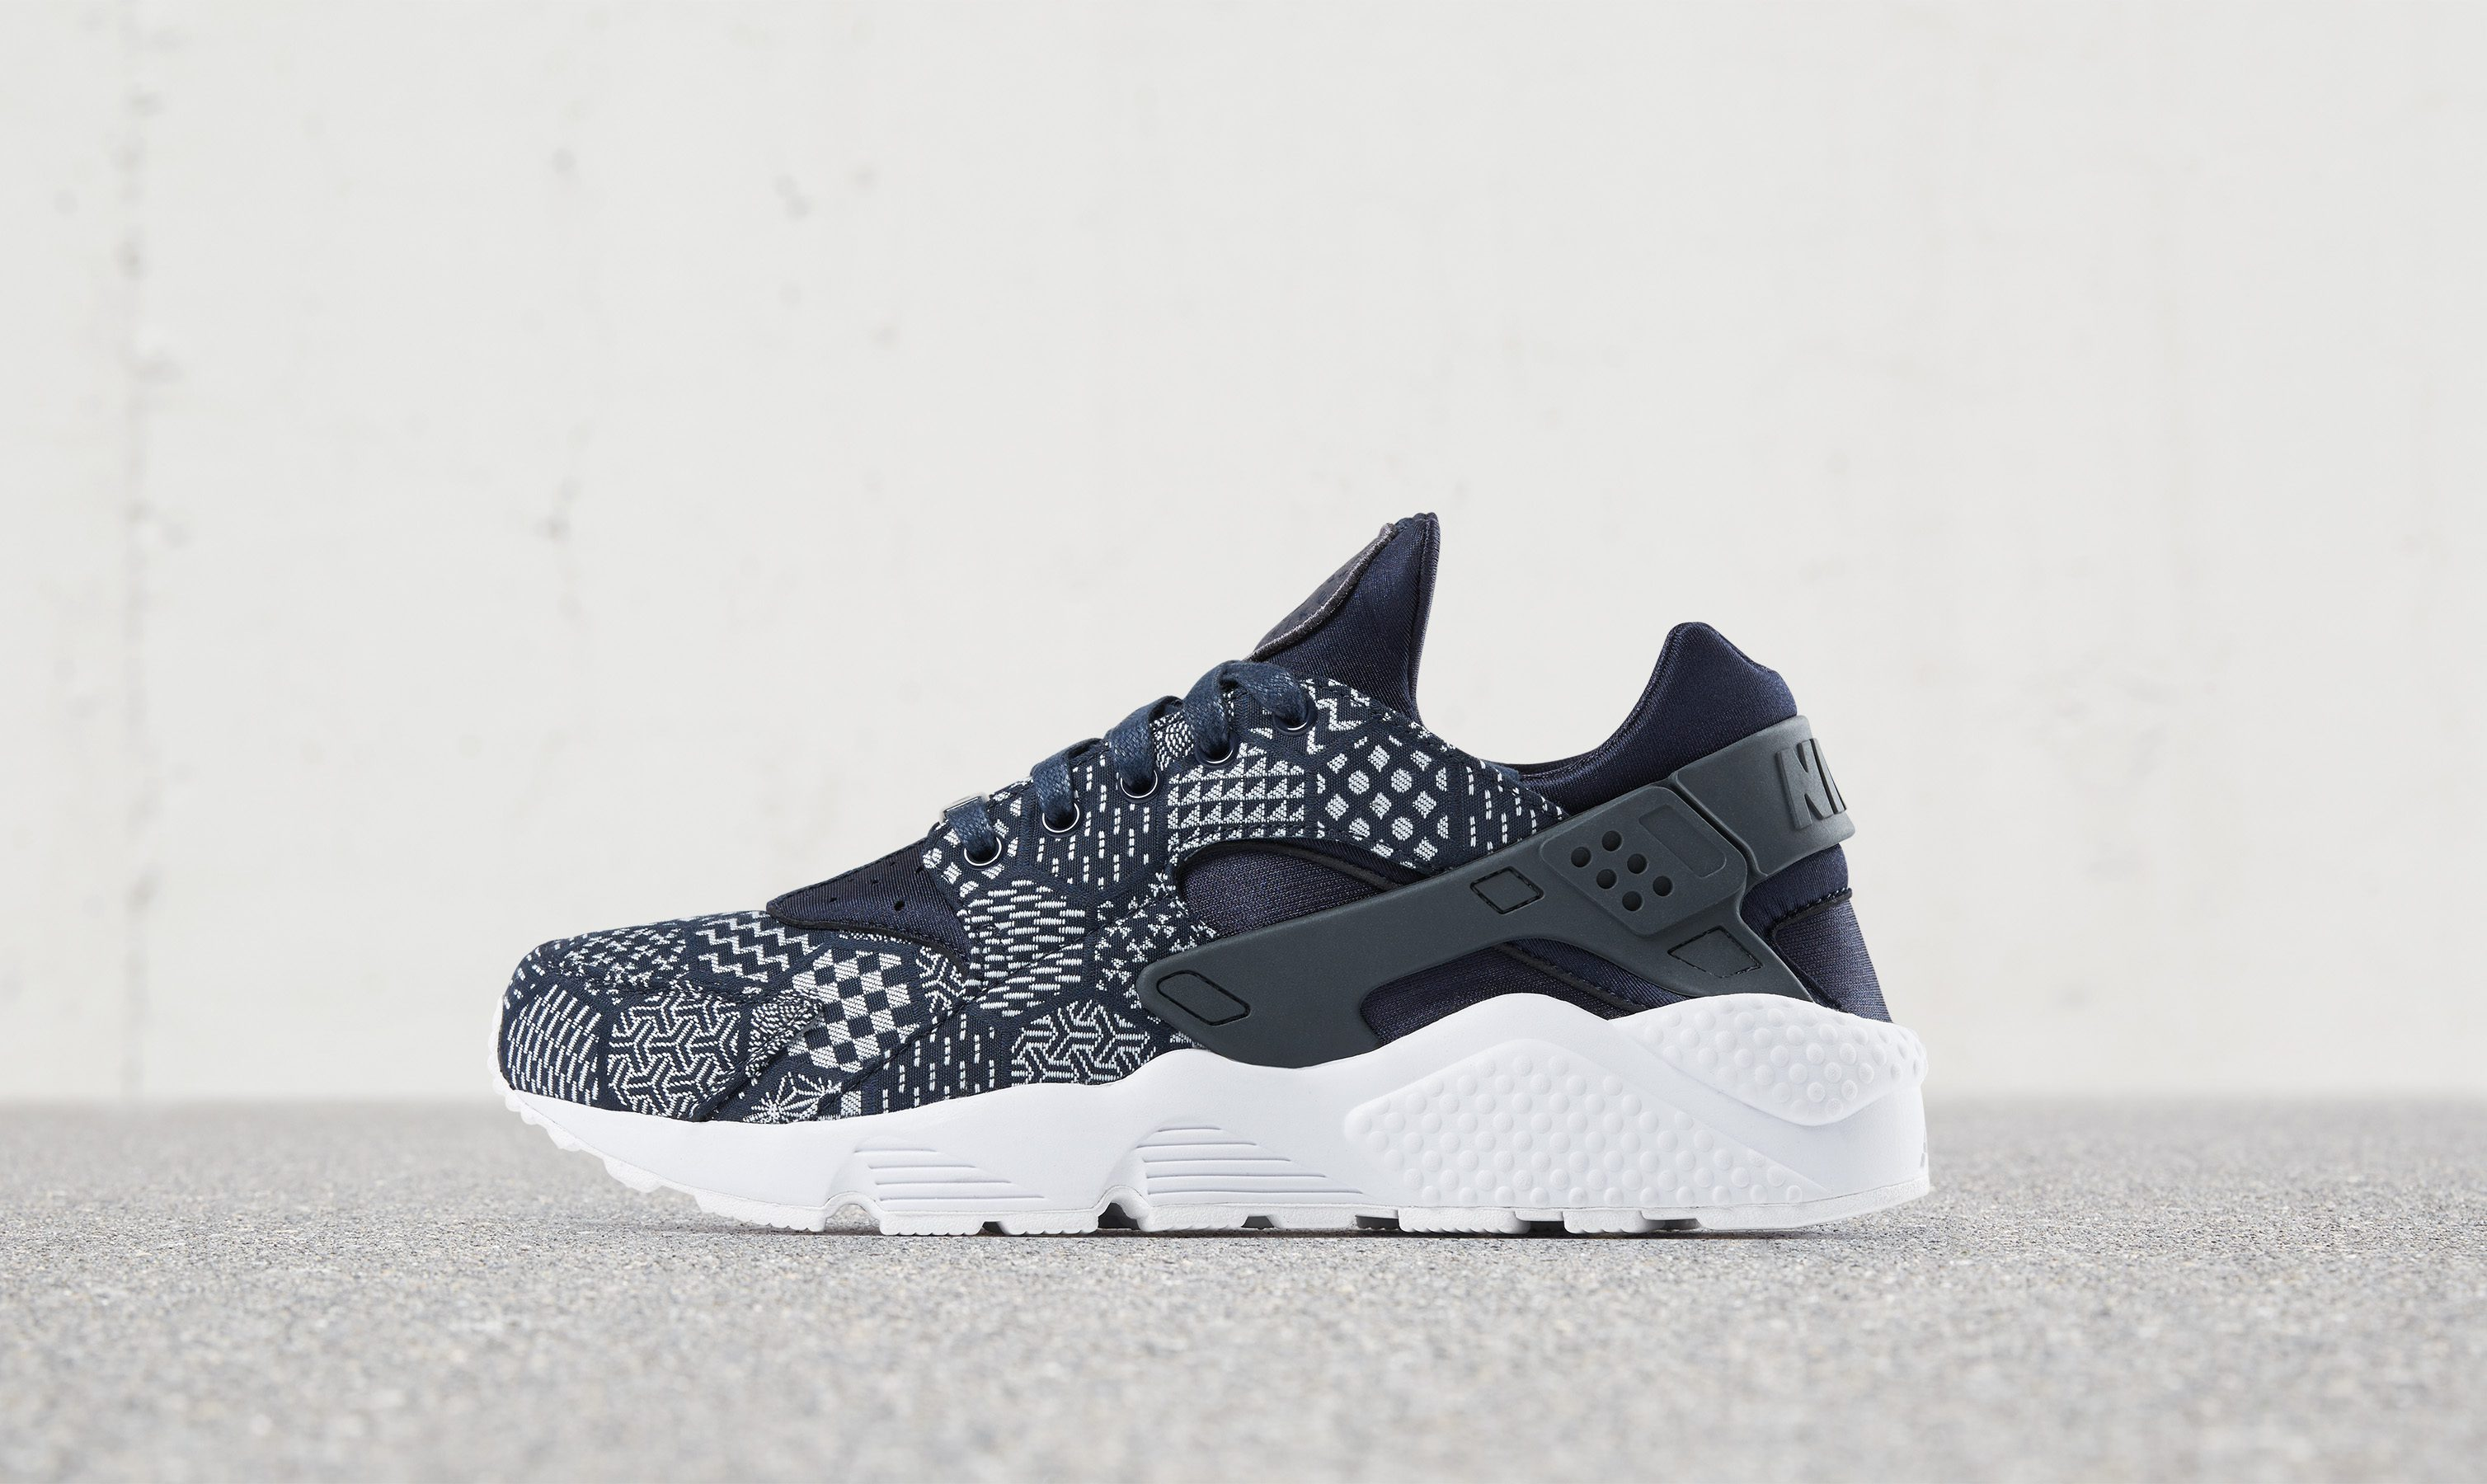 a67cde02ab421 The Nike Huarache sneaker exists thanks to a disobedient employee ...